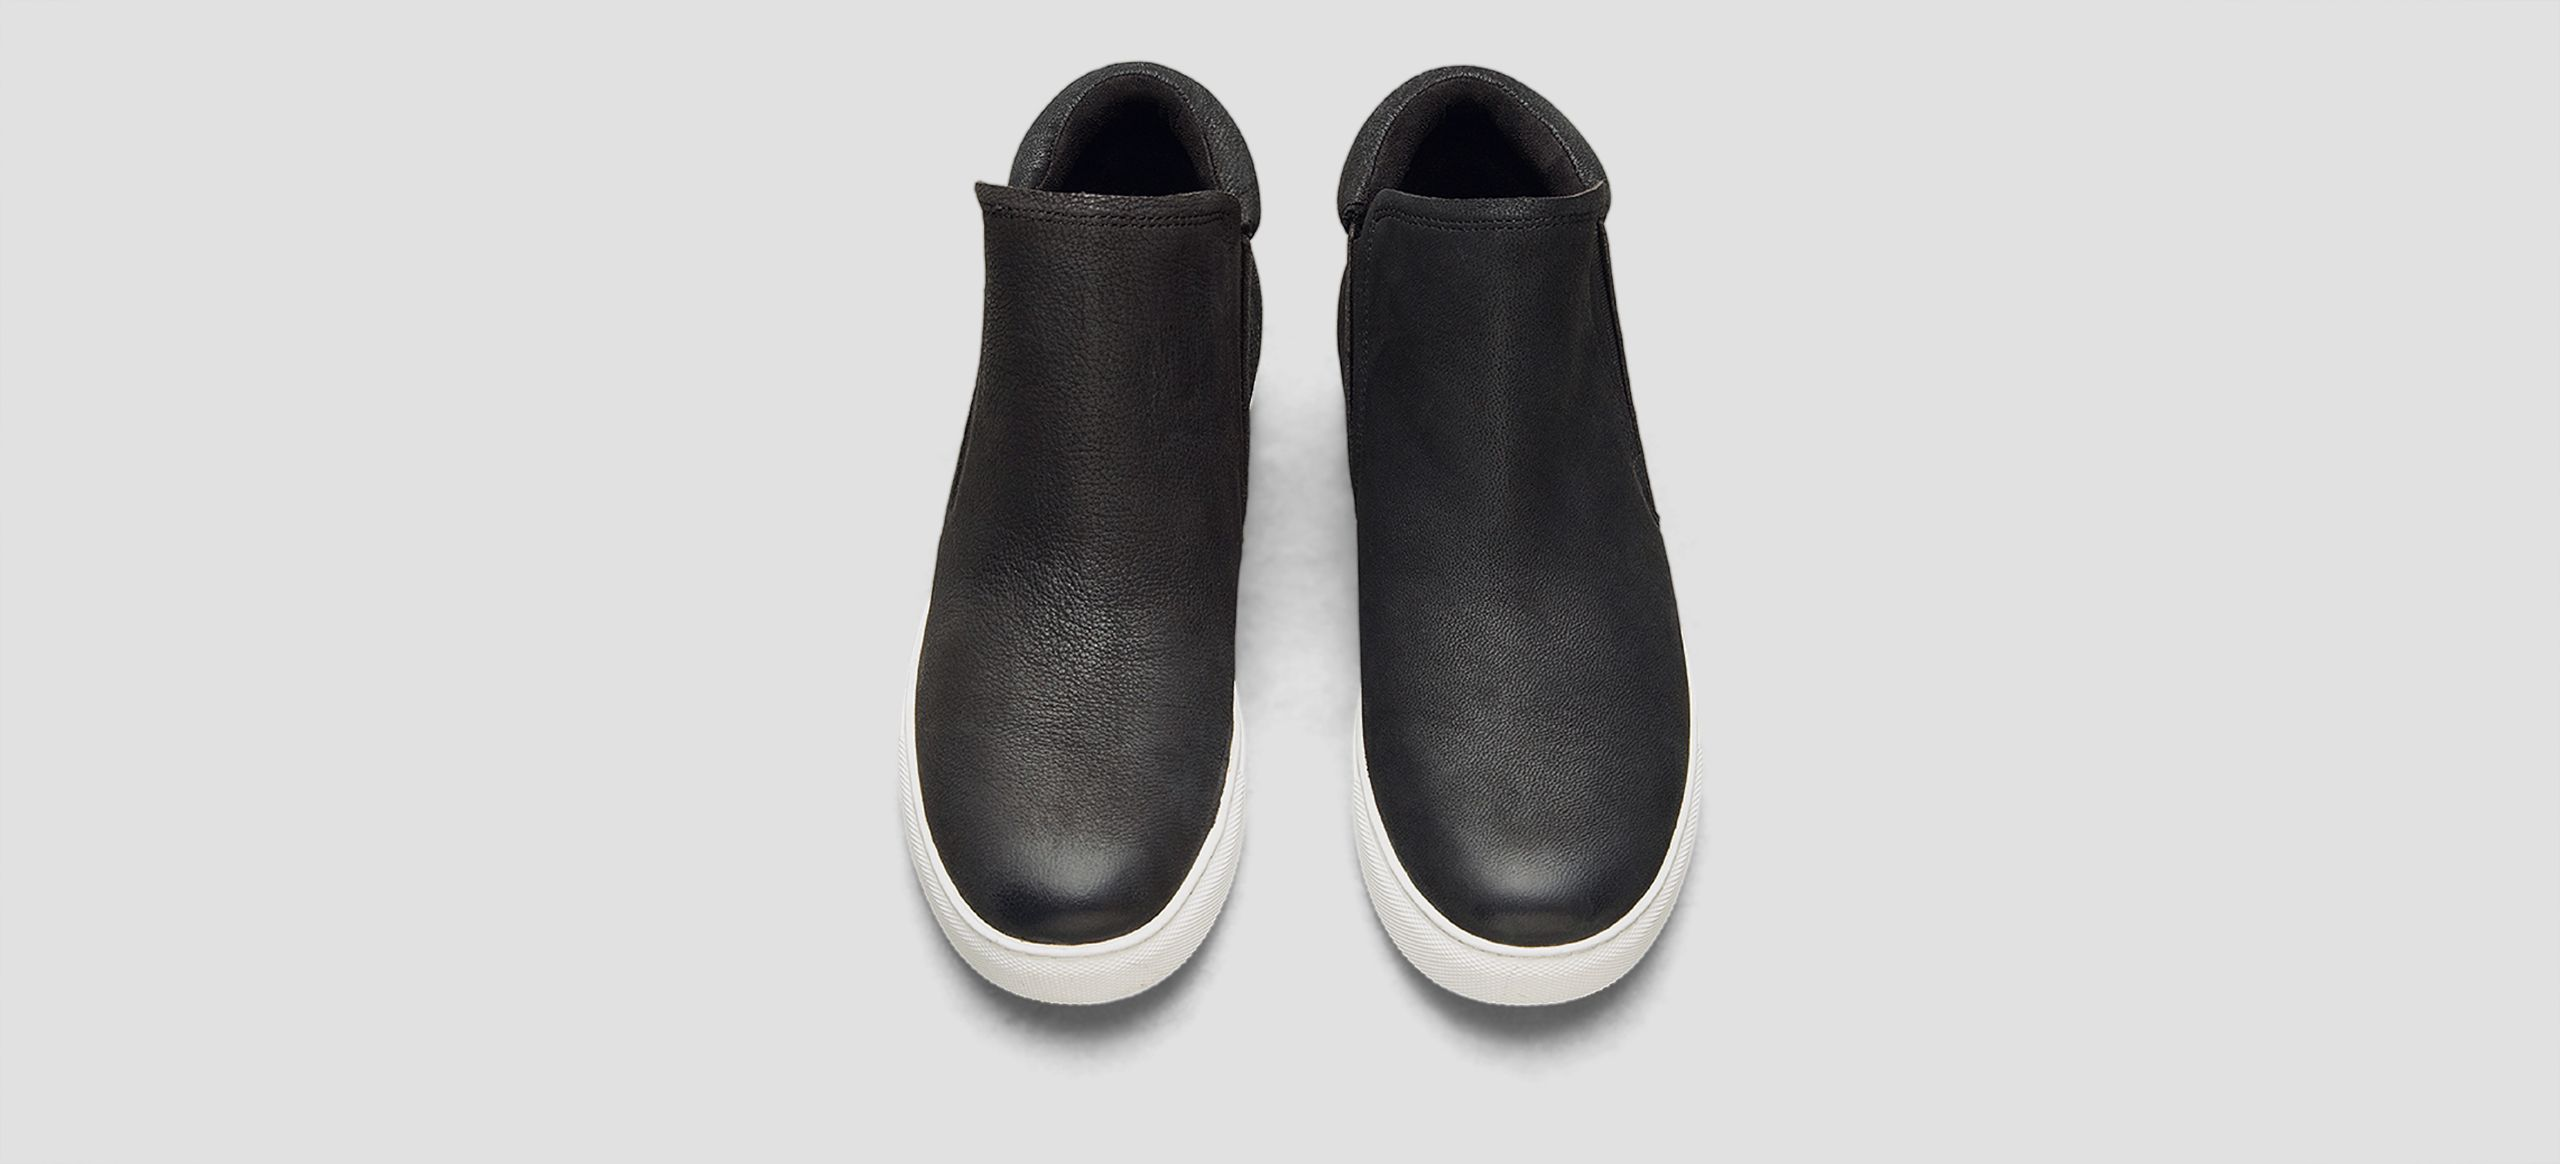 """Slip-on sneaker    Elasticized insets    Round toe    Padding at collar    Nubuck upper    Microfiber lining    Rubber sole    Concealed 1"""" wedge    Imported"""